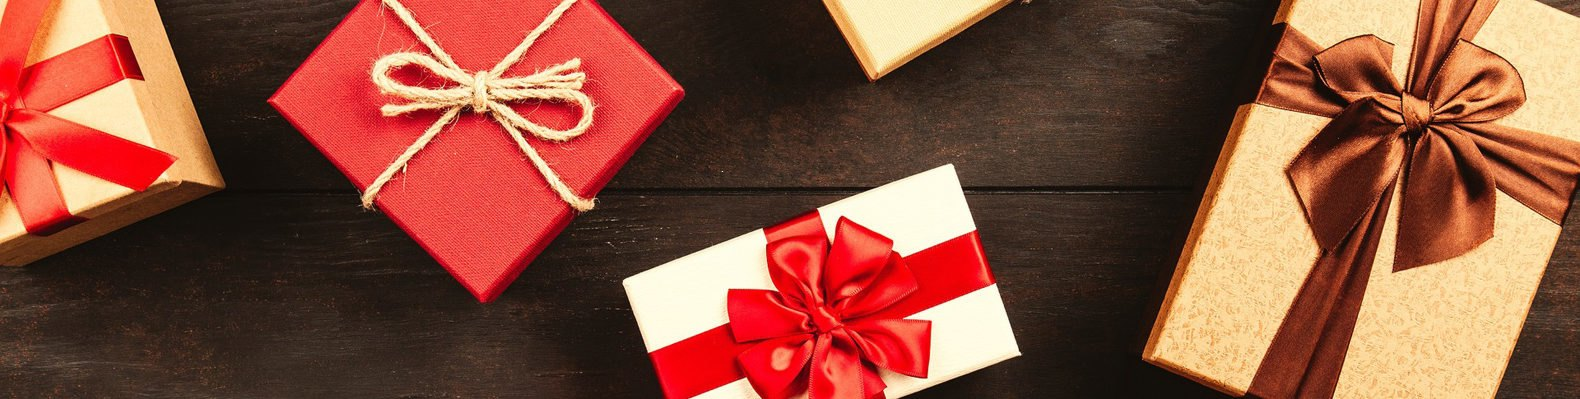 red and white present boxes on wood background